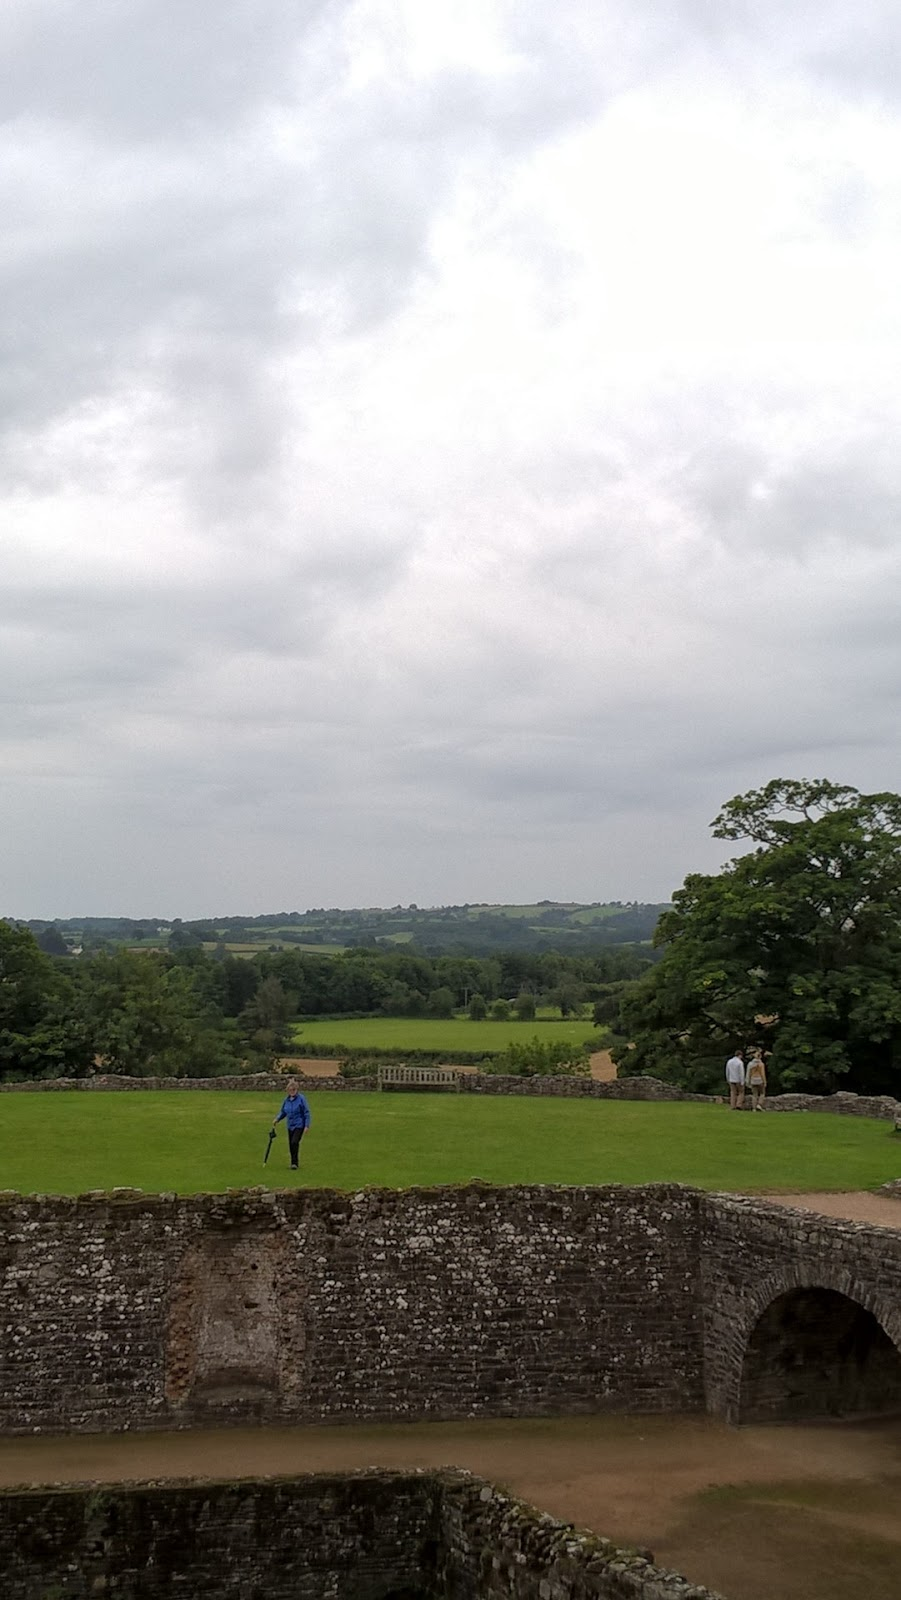 looking out at the countryside surrounding Raglan Castle